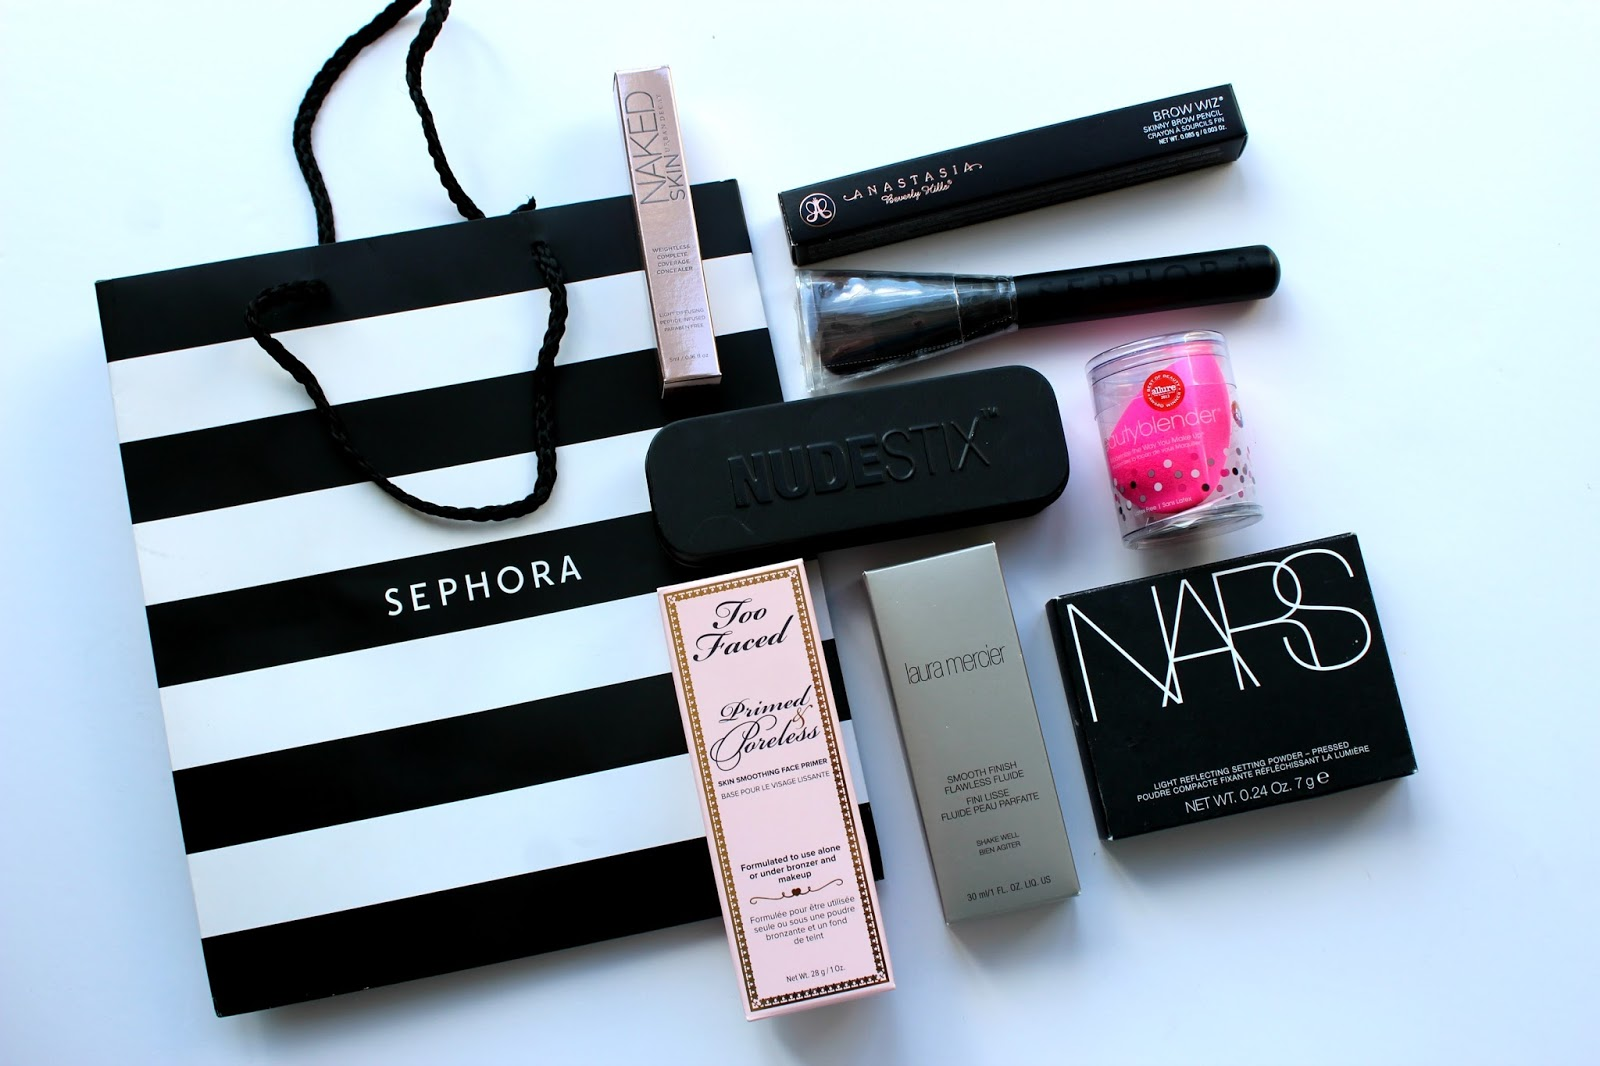 Sephora Makeup Kit Review - (50 Colours over 2000 looks)